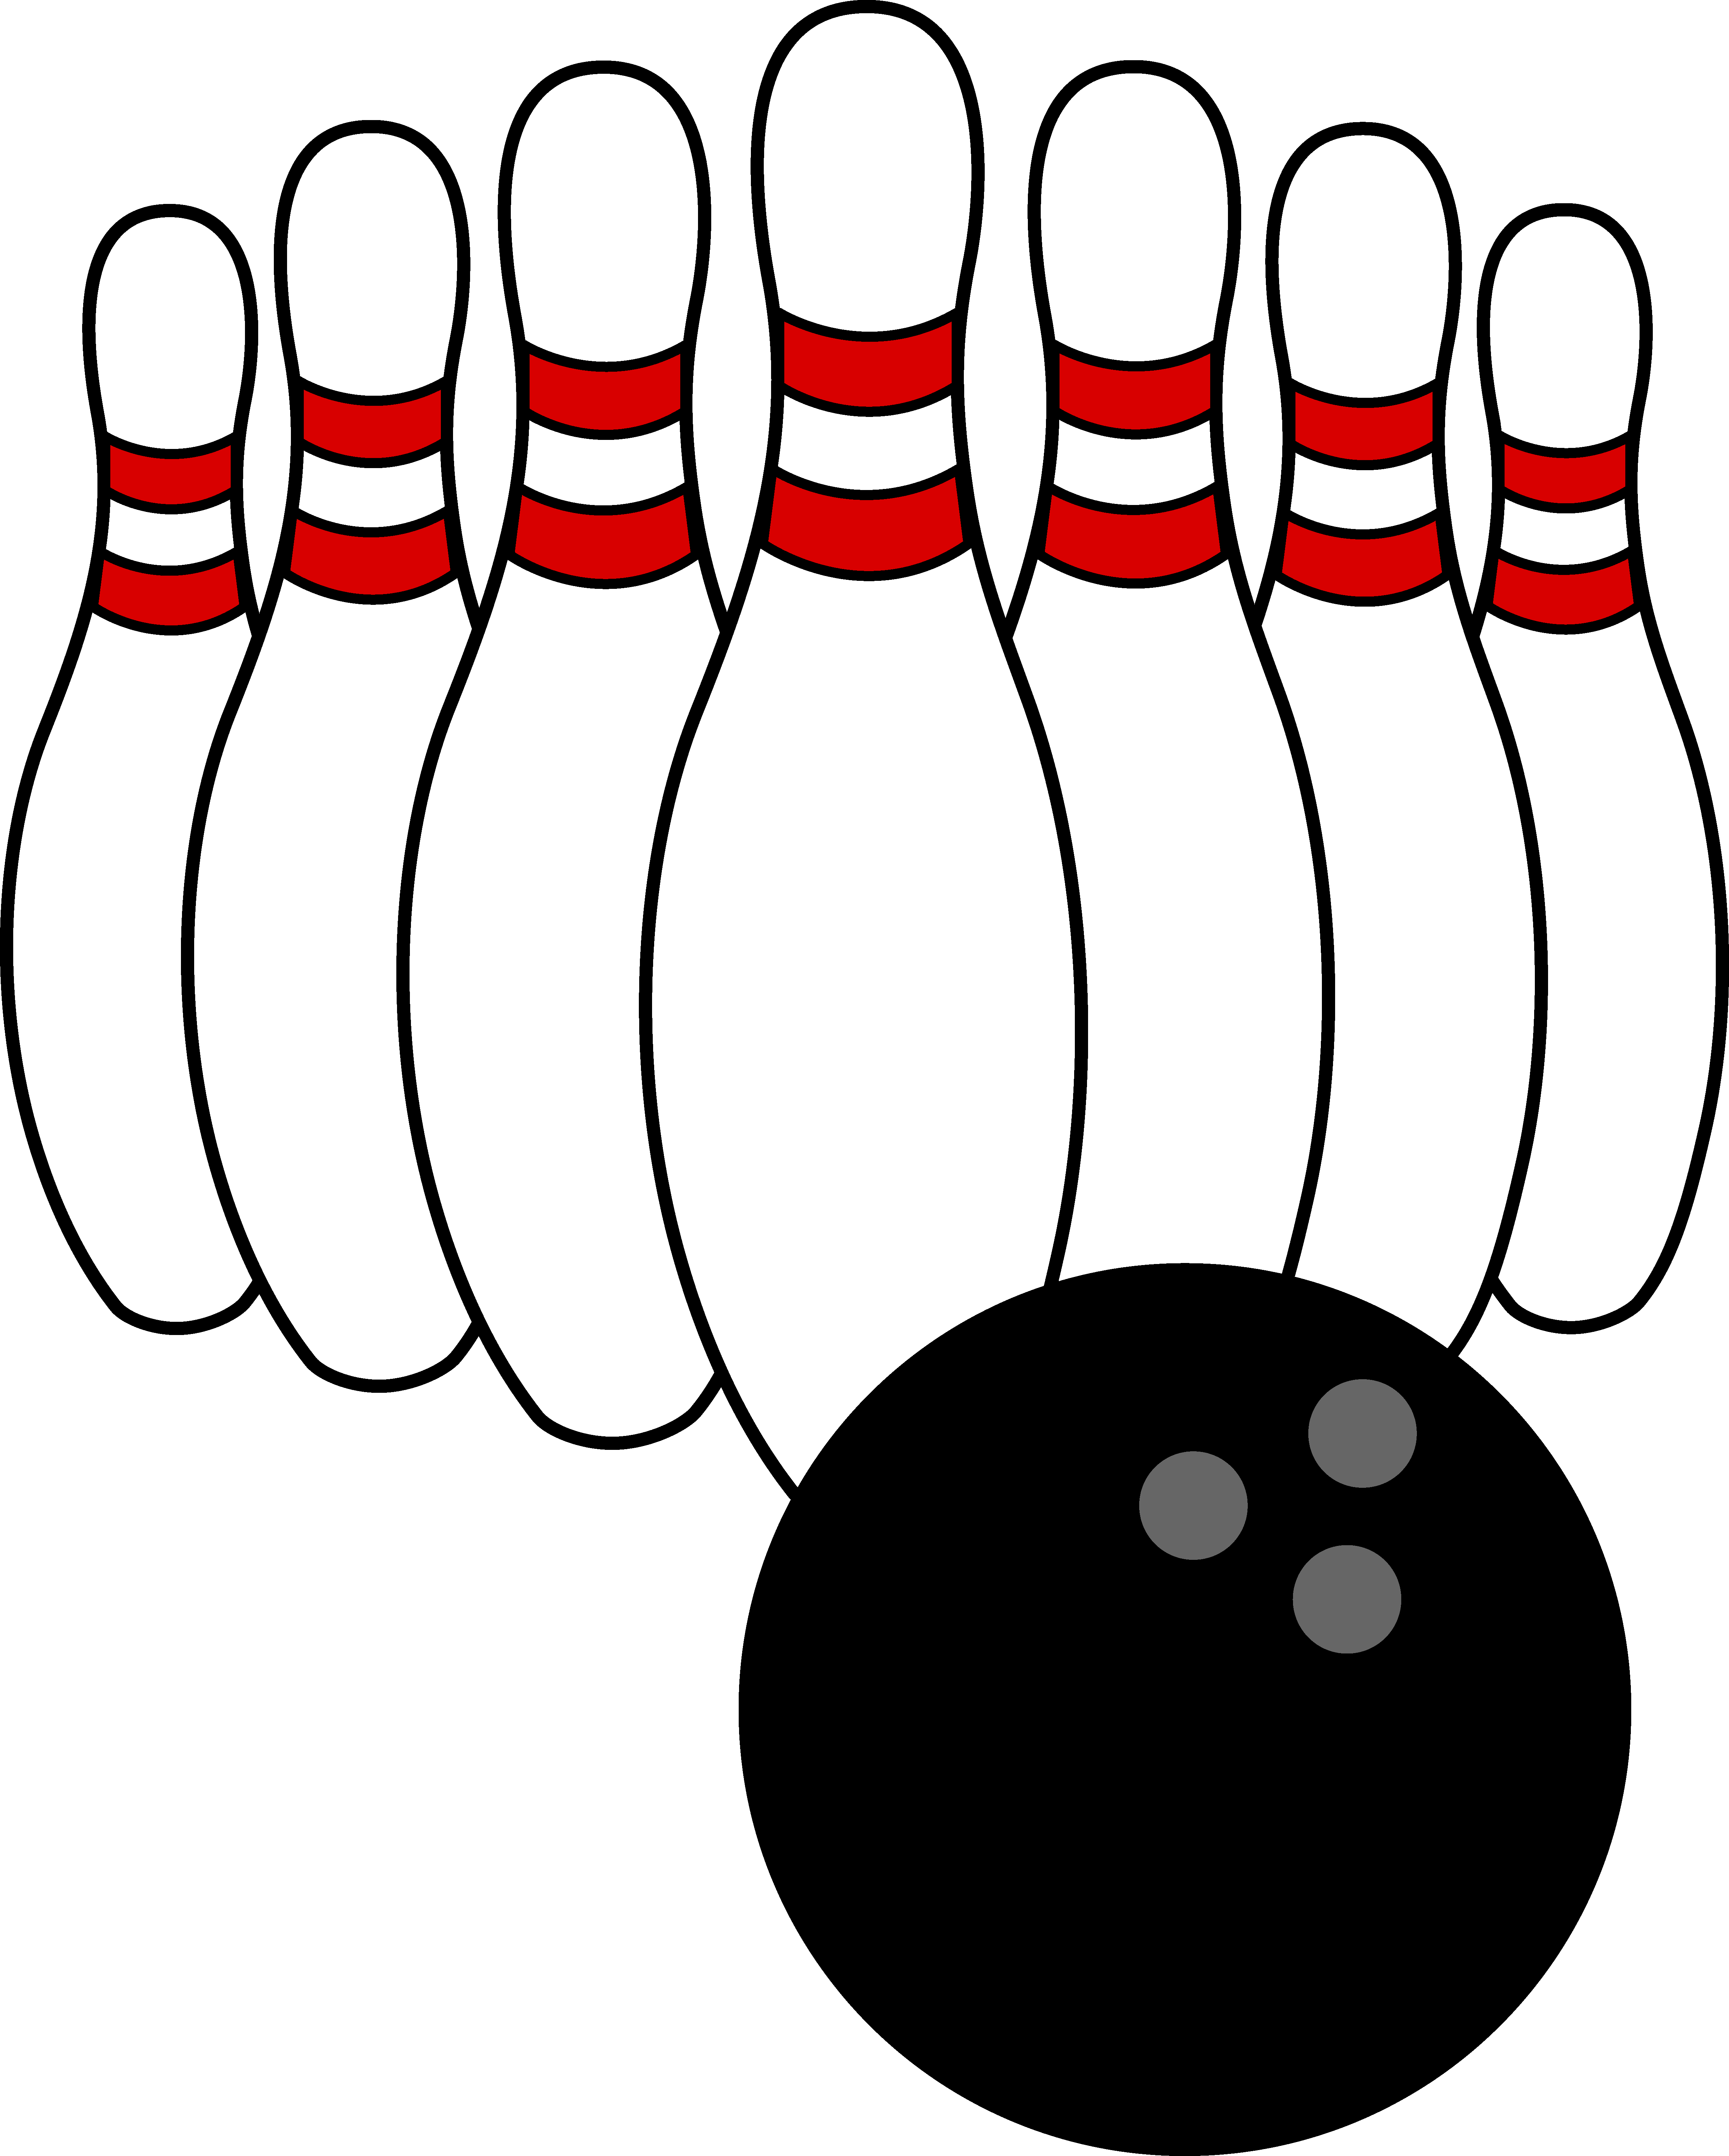 Bowling clipart candlepin bowling. Clip art ball and